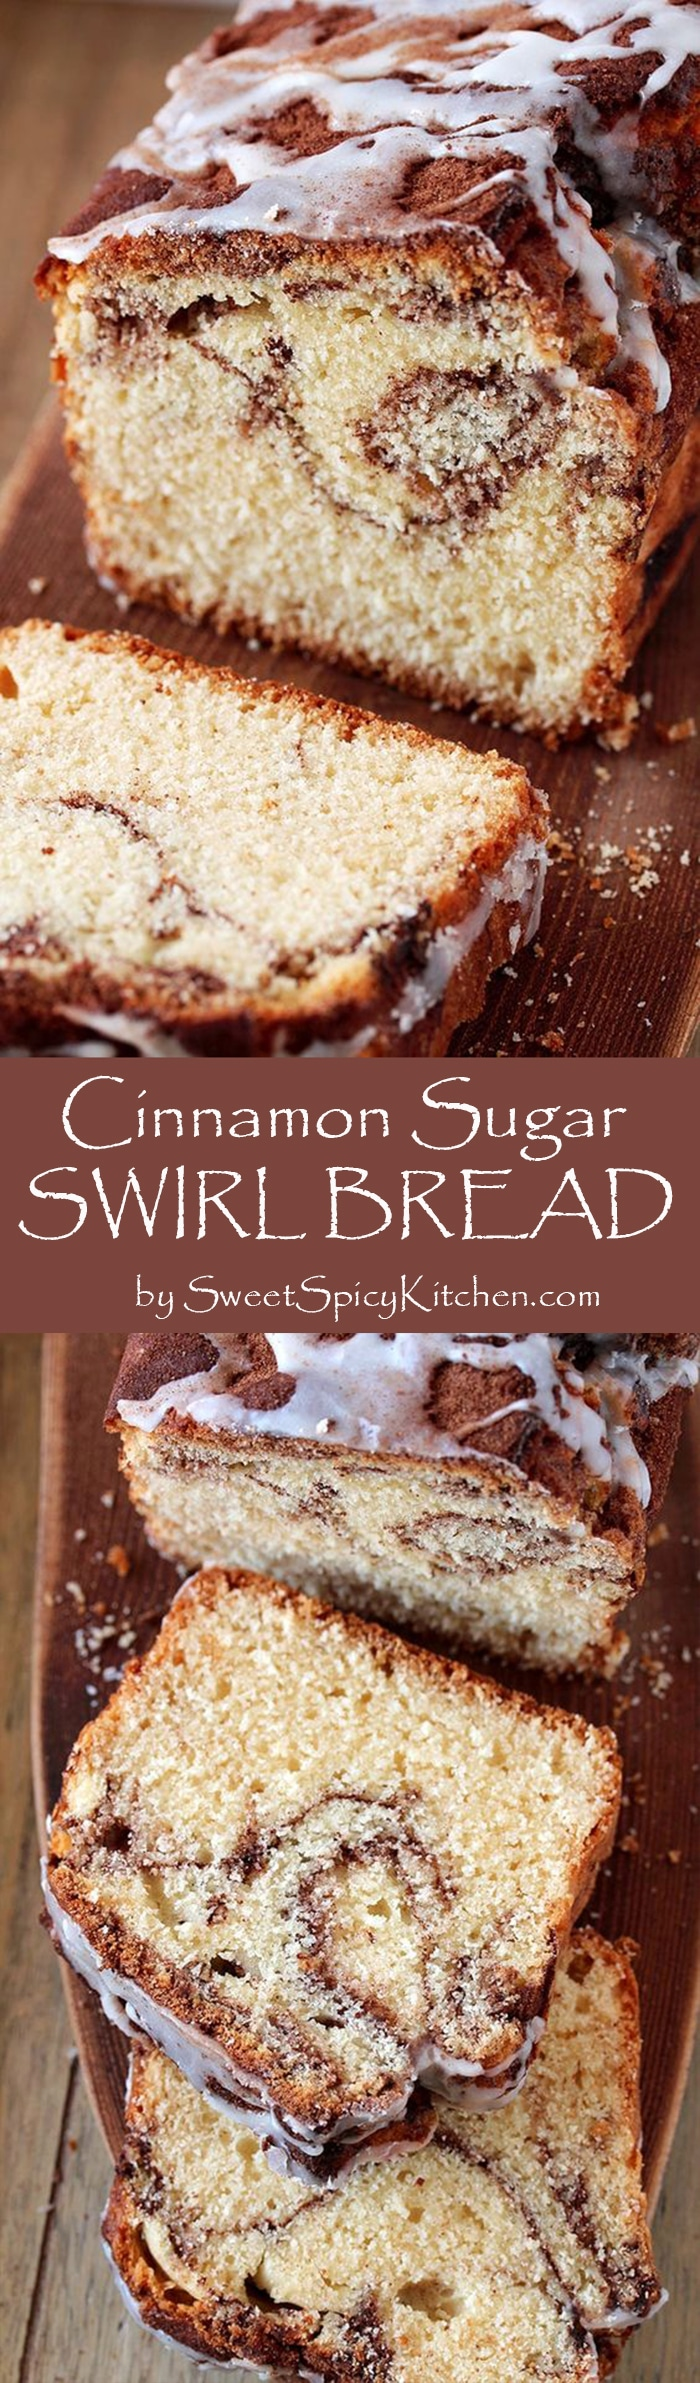 You can find the recipe for our favorite Cinnamon Sugar Swirl Bread, here. This perfectly soft and moist bread is made of simple ingredients that can be found in every kitchen and it's as simple as making a swirl out of cinnamon – sugar mixture and then drizzle it with vanilla glaze.